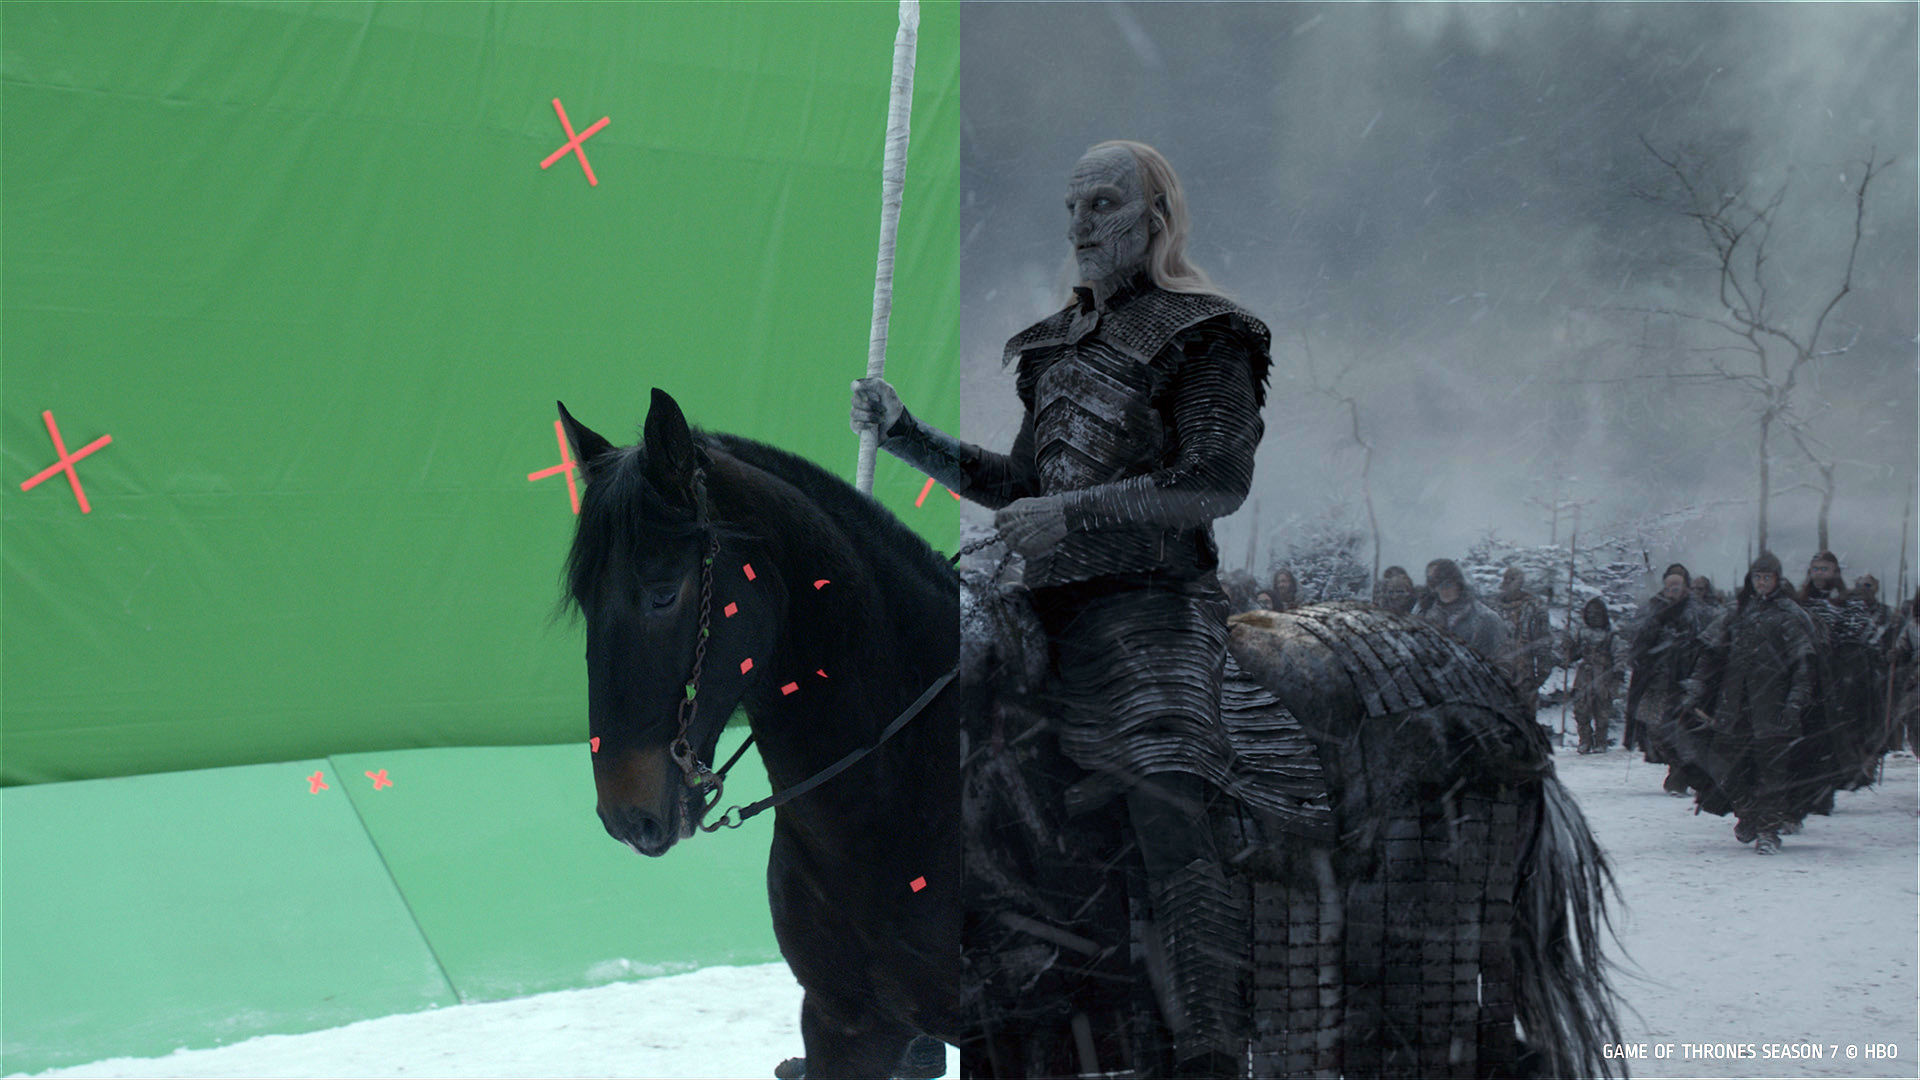 These new Game of Thrones VFX breakdowns show how the dragons, epic battles, armadas and castles were created